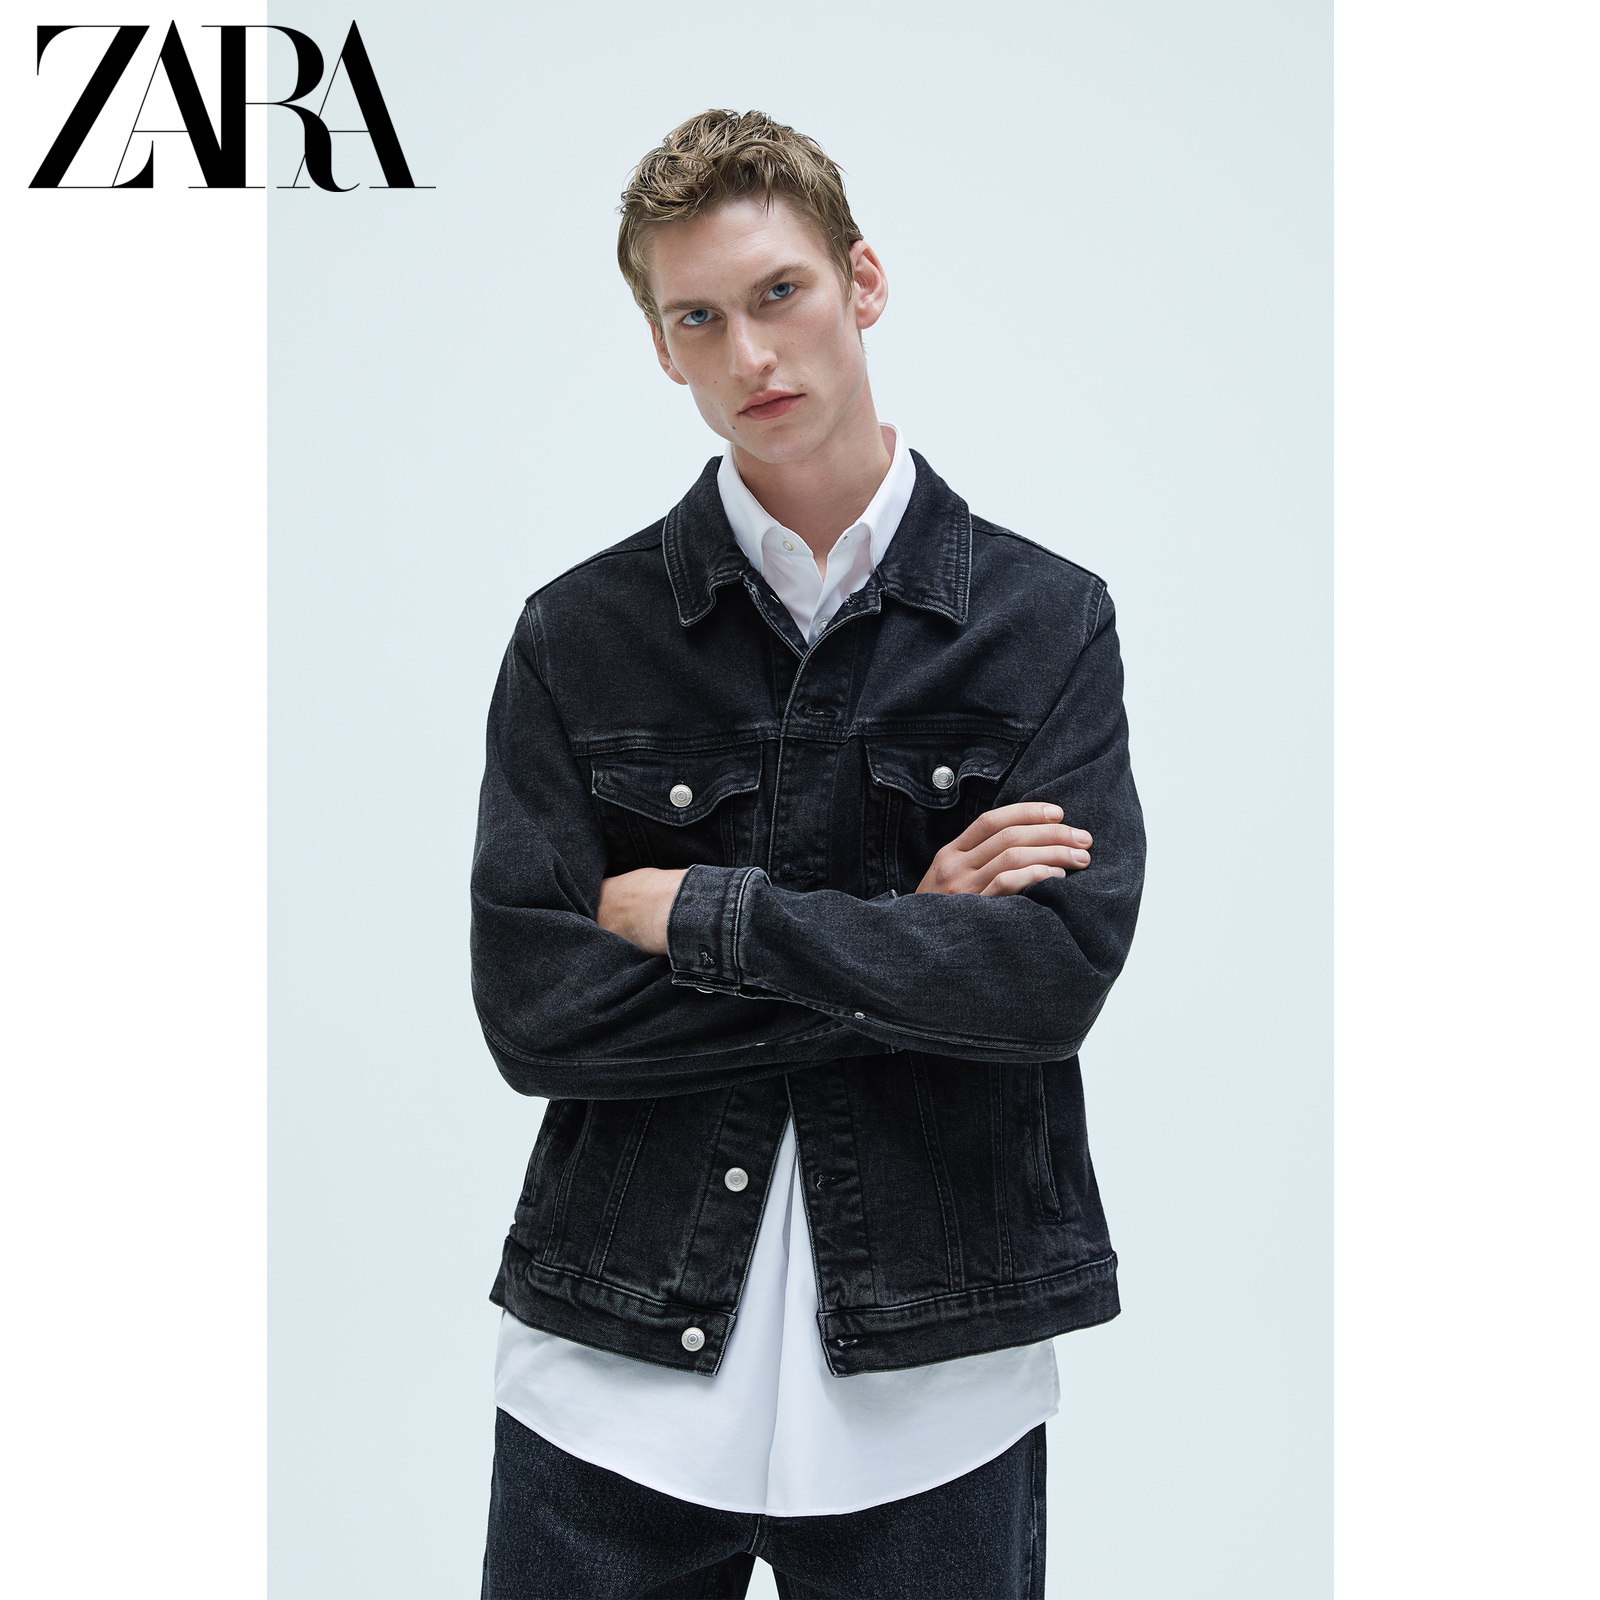 Zara new men's basic denim jacket coat 04454400802